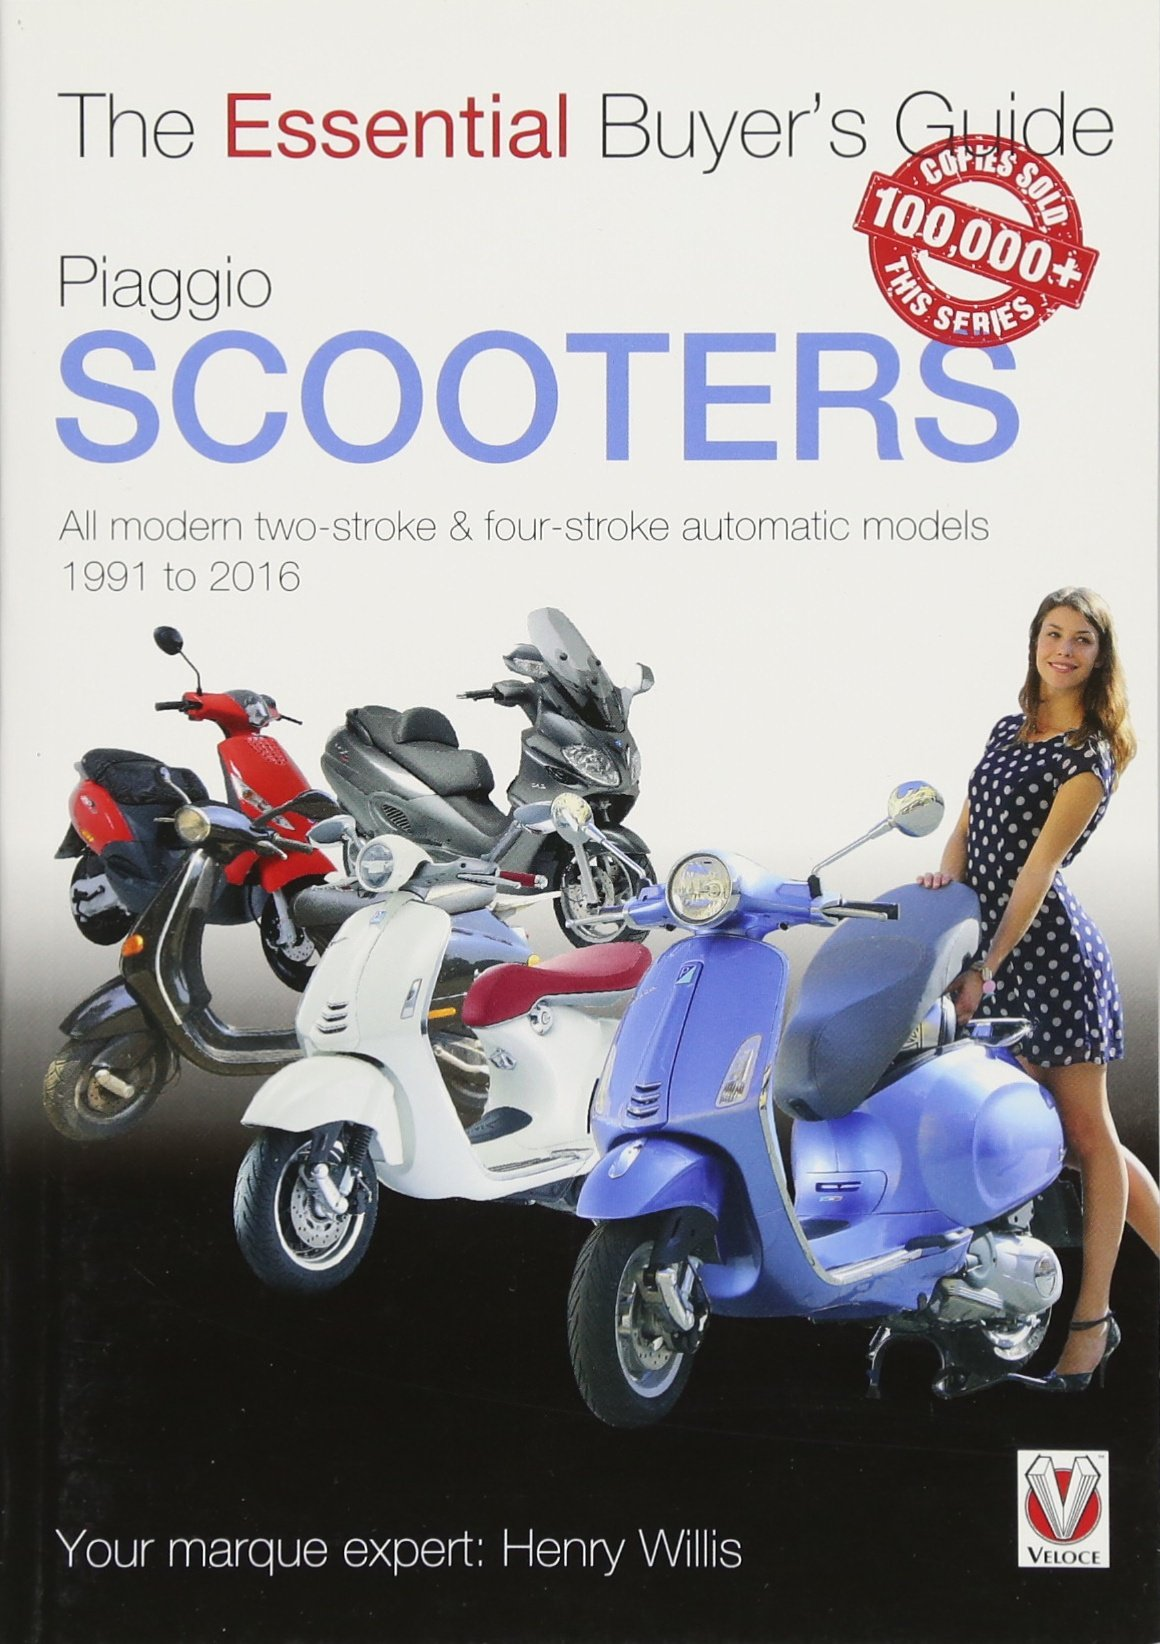 Read Online Piaggio Scooters: all modern two-stroke & four-stroke automatic models 1991 to 2016 (Essential Buyer's Guide) pdf